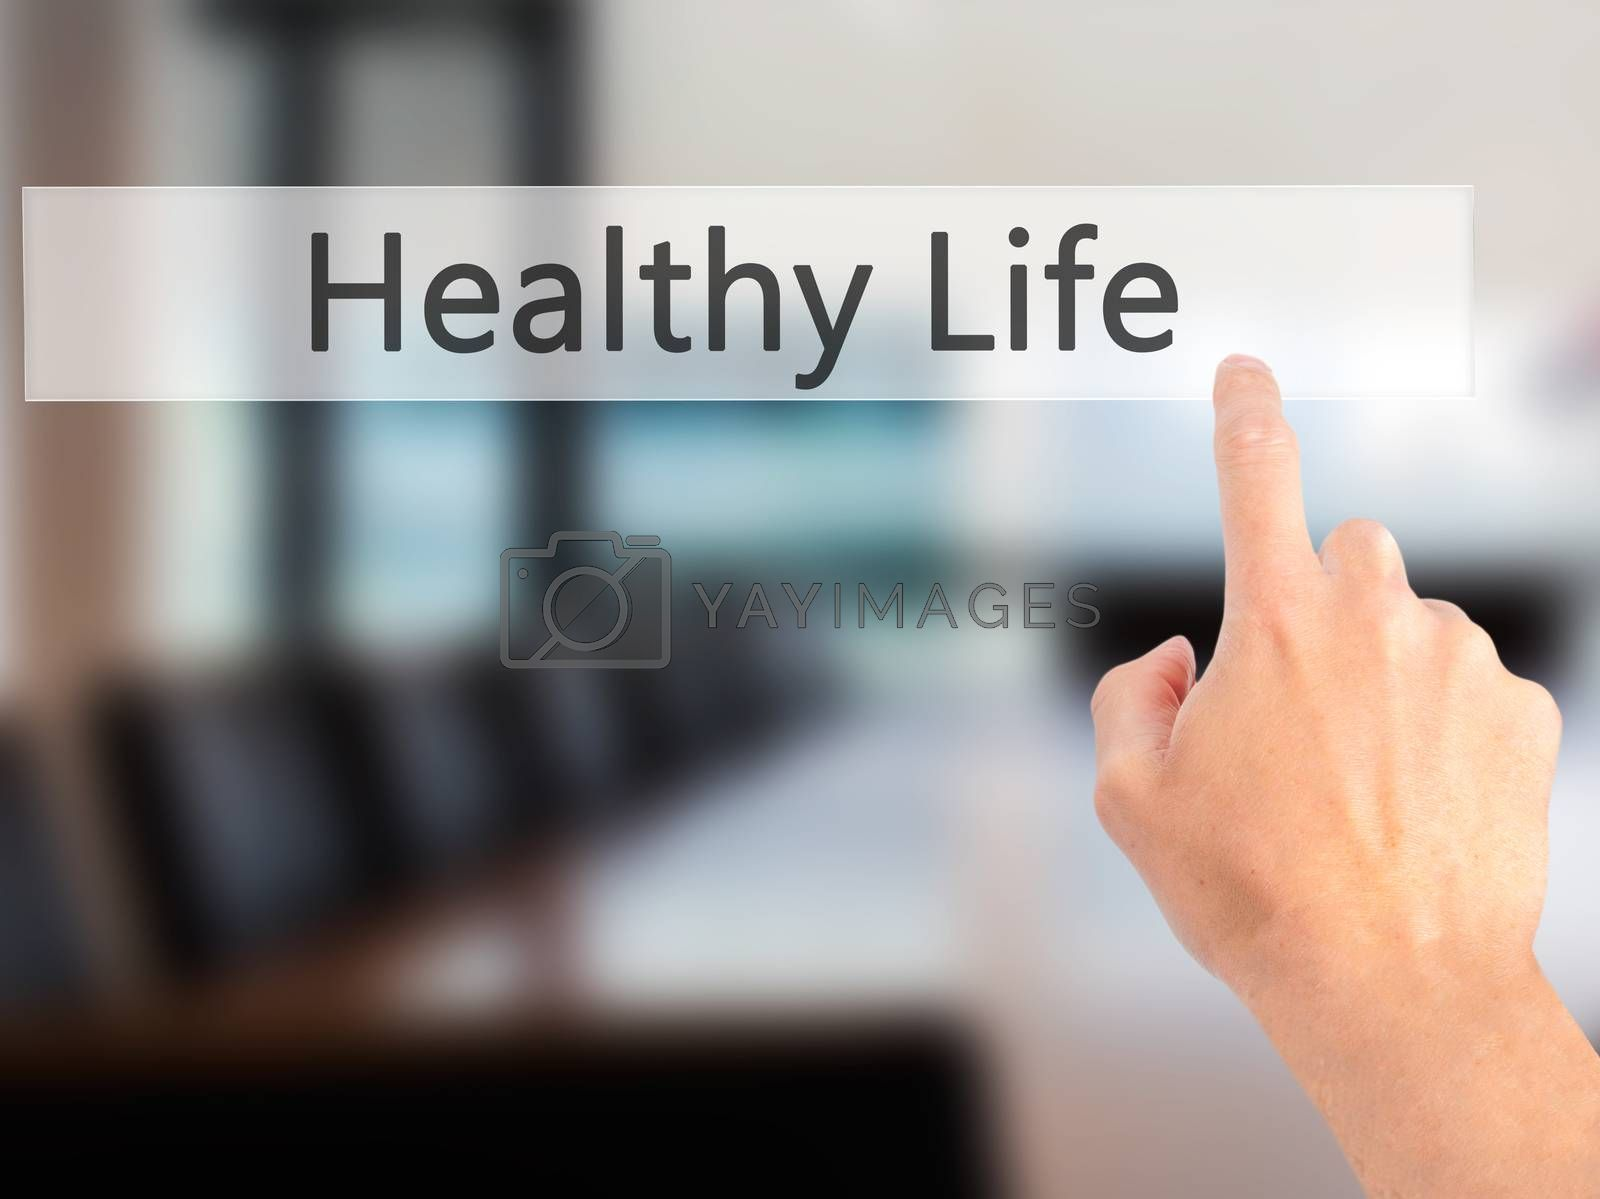 Healthy Life - Hand pressing a button on blurred background conc by netsay.net